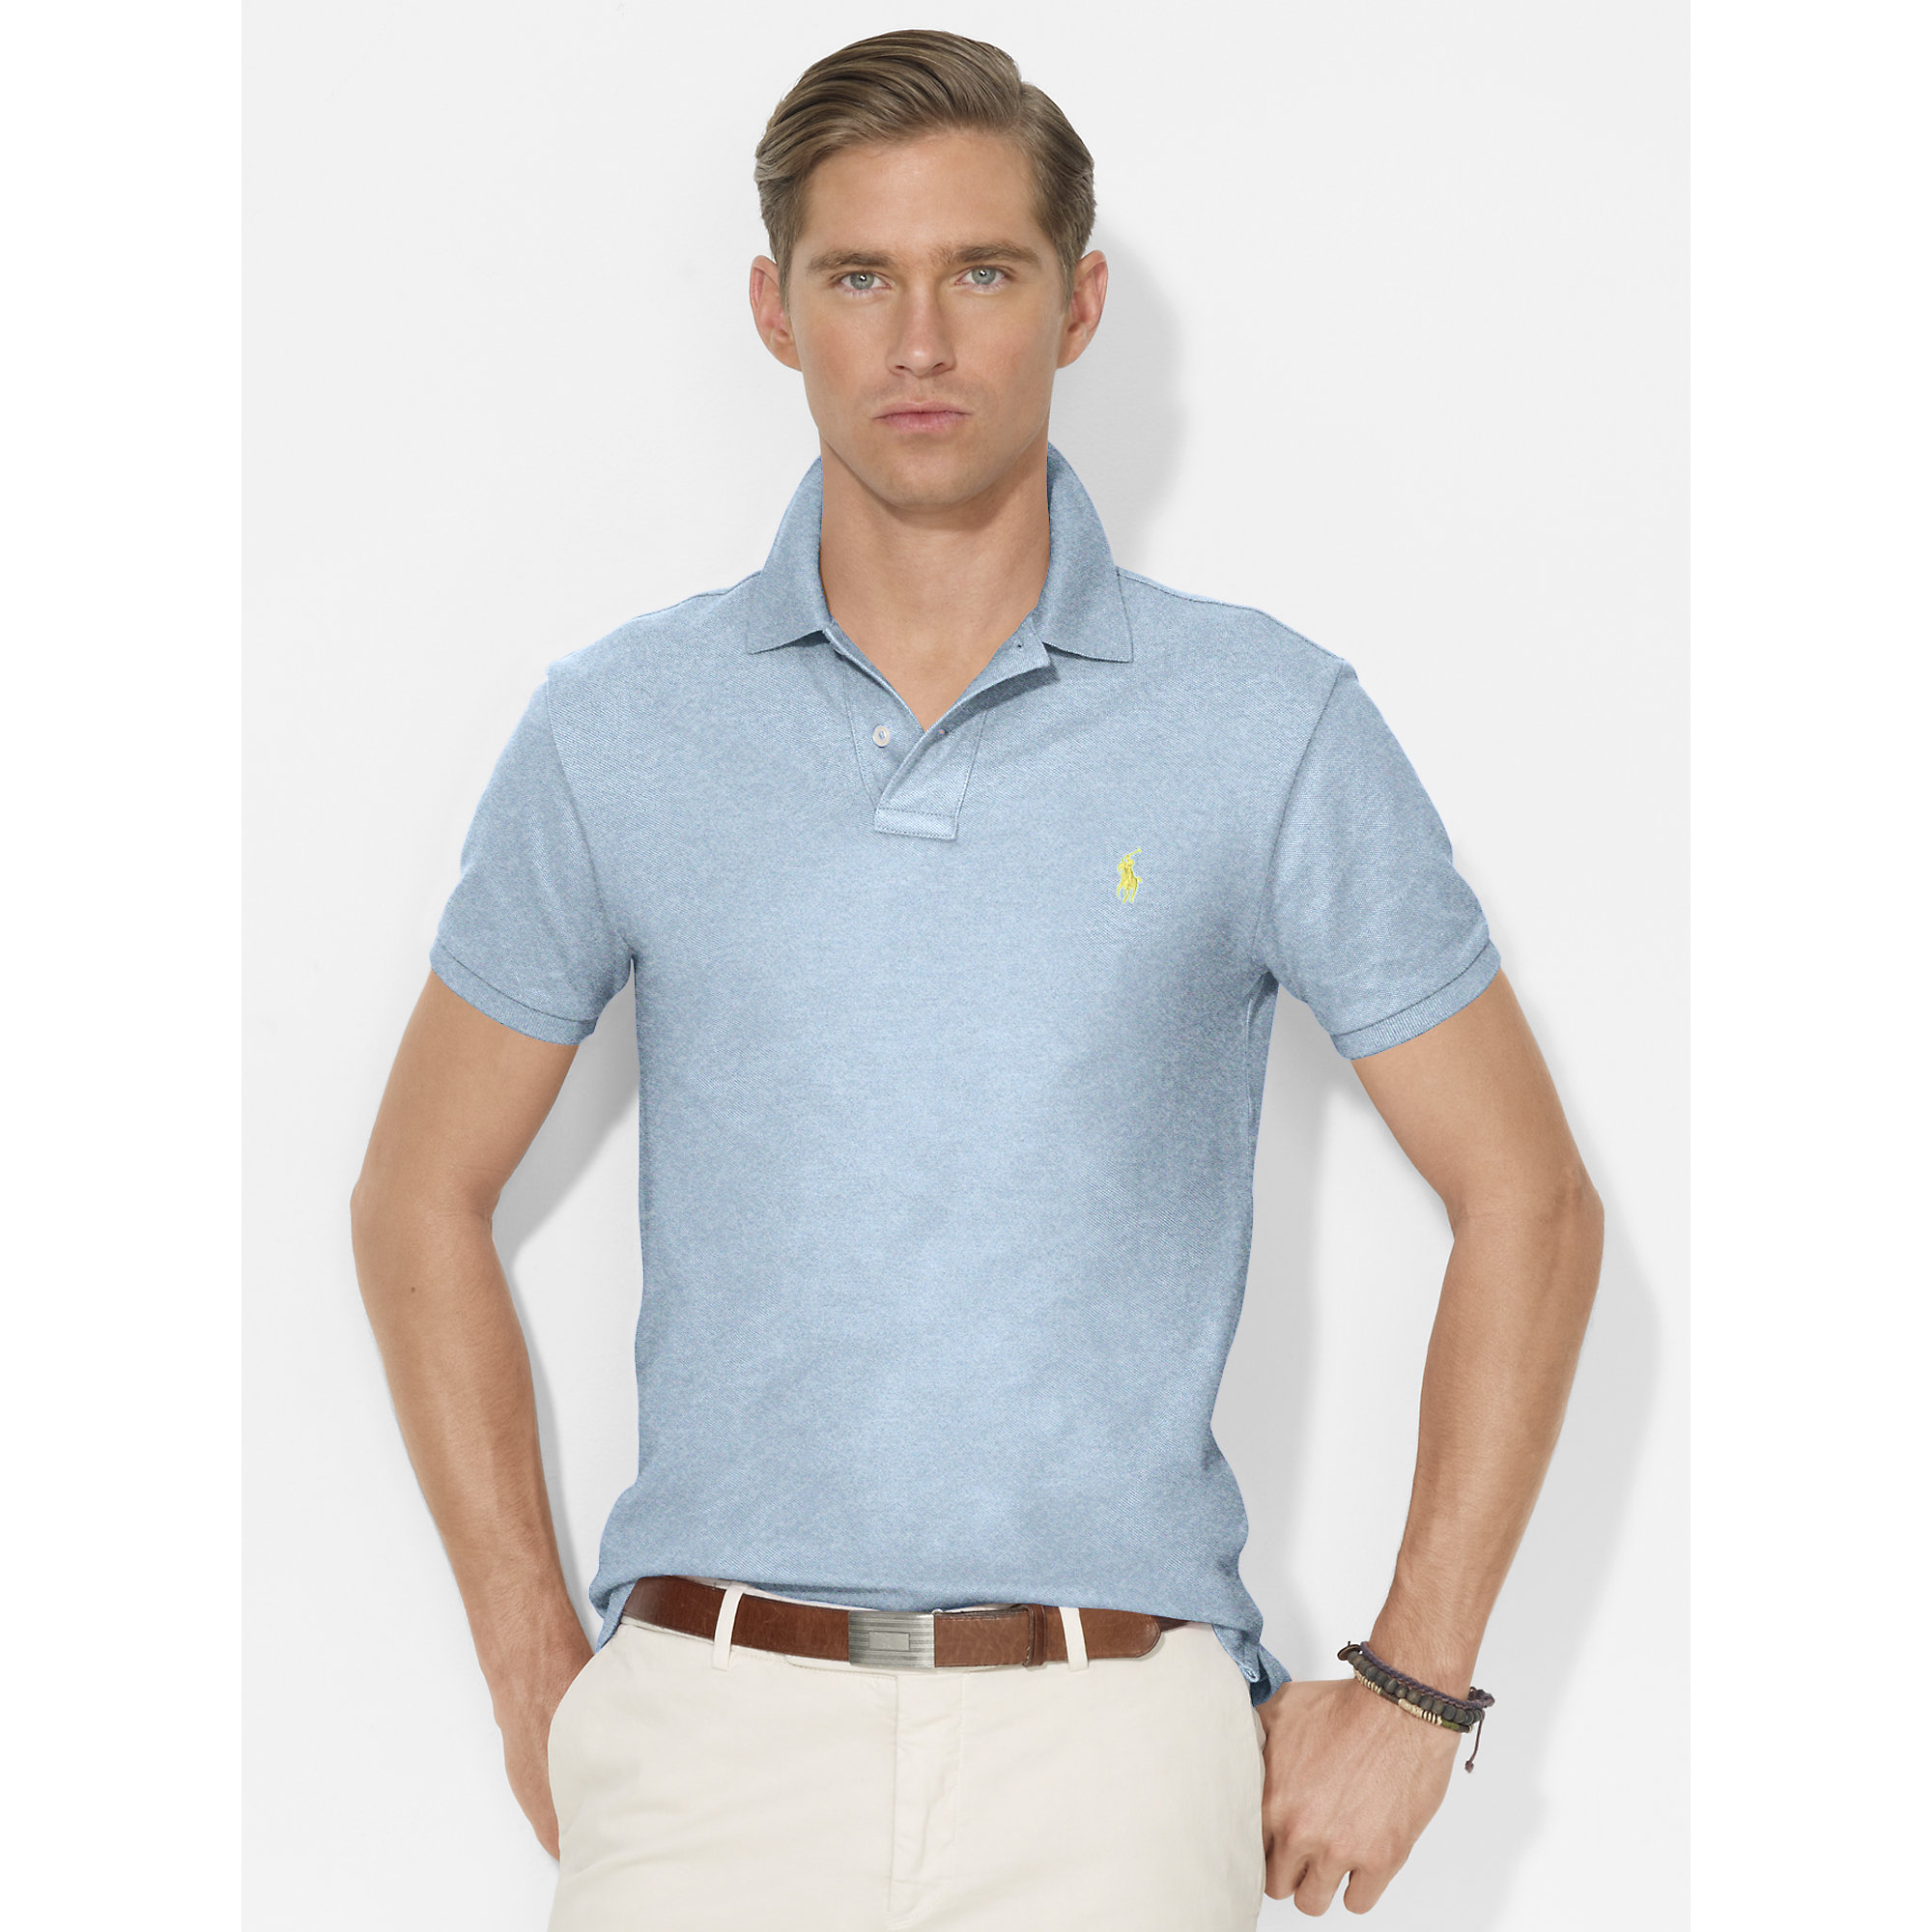 polo ralph lauren slim fit mesh polo in blue for men jamaica heather. Black Bedroom Furniture Sets. Home Design Ideas